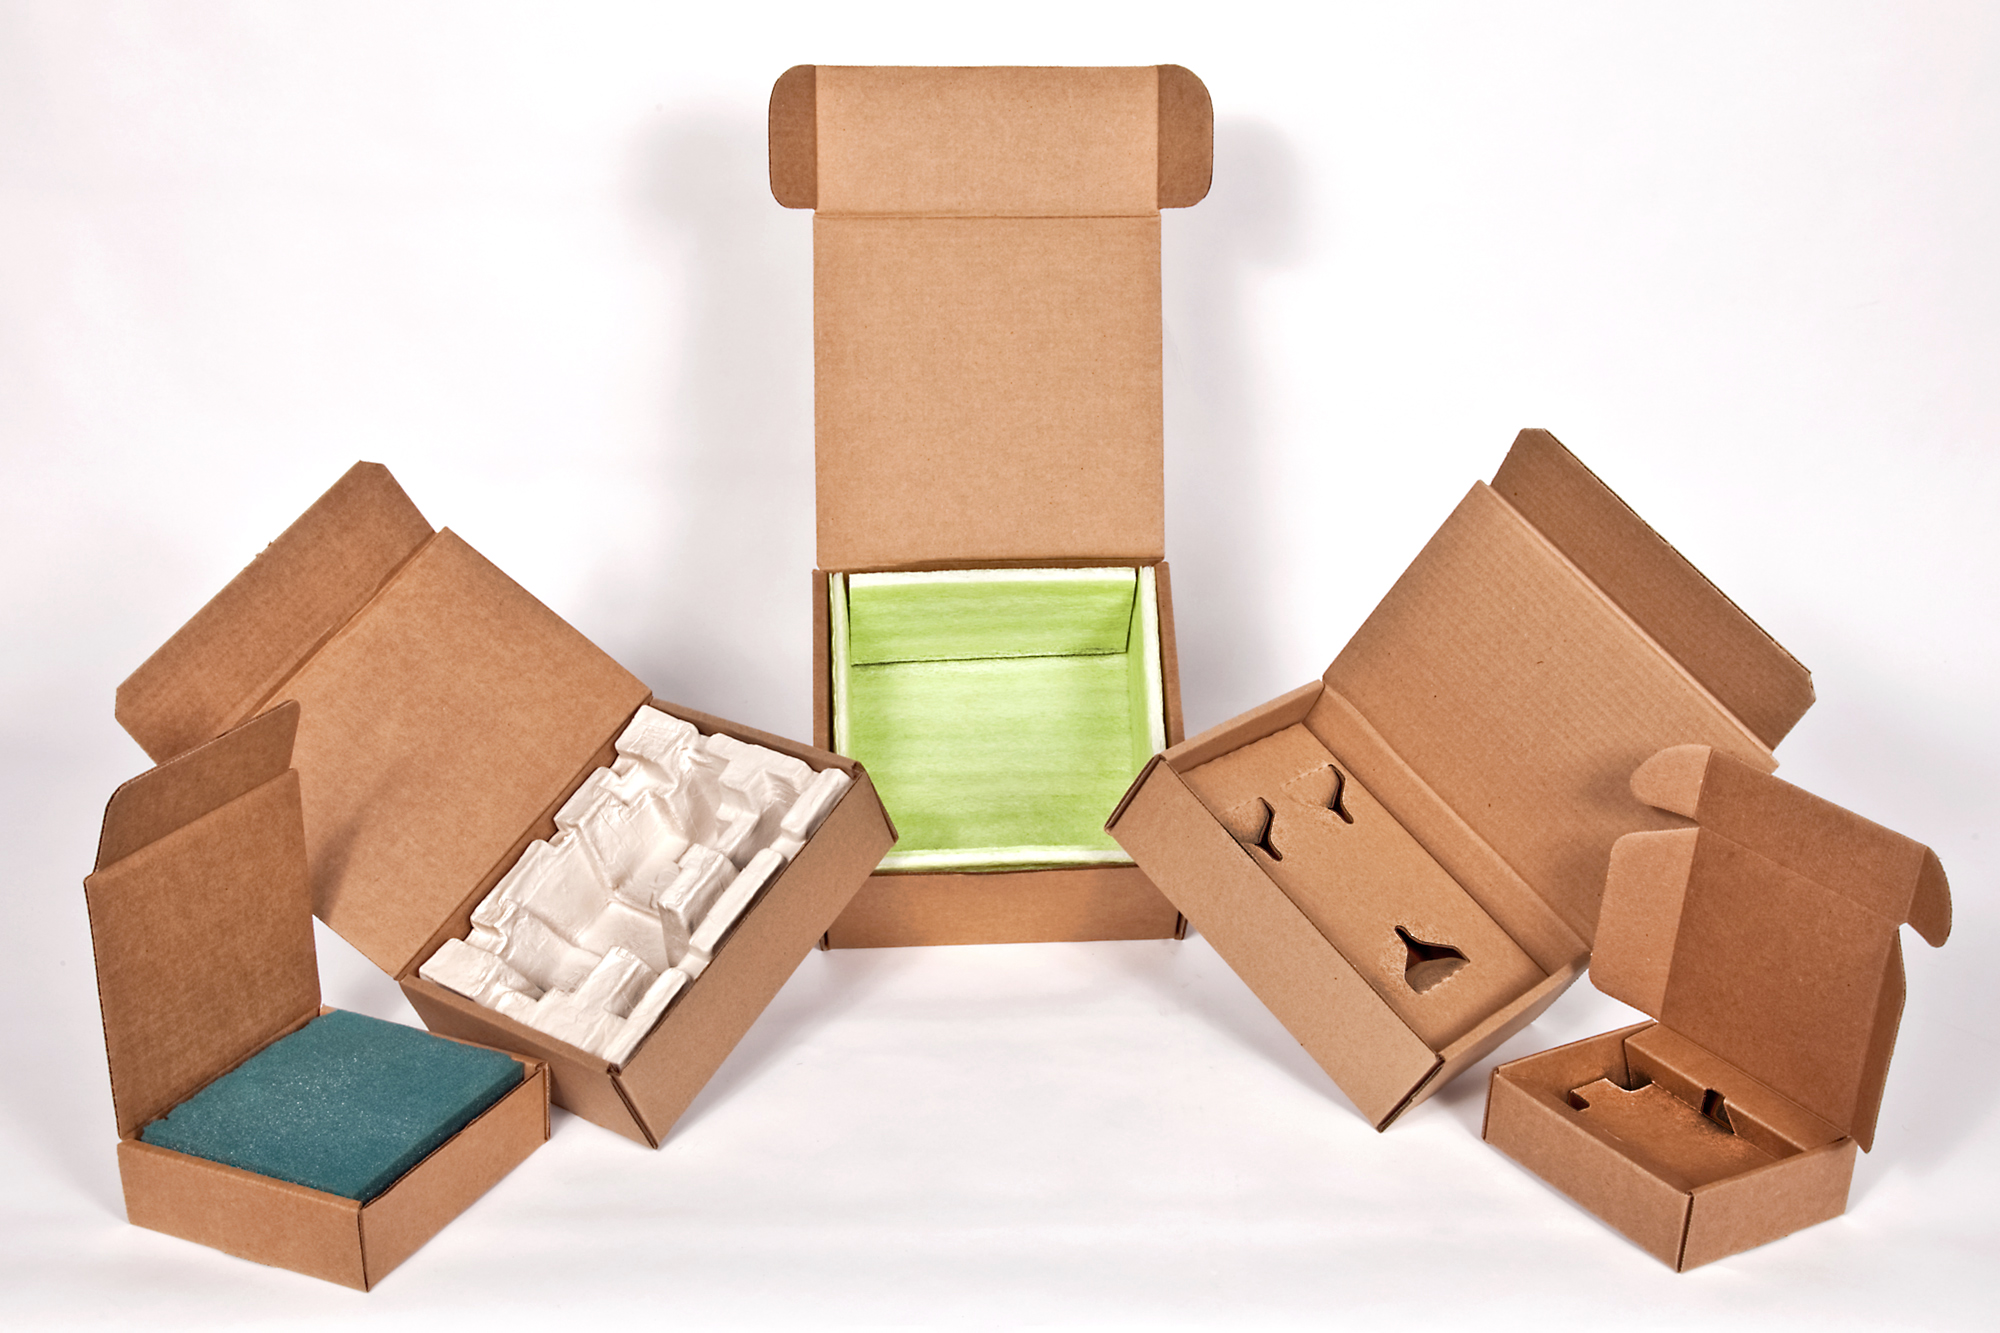 Custom Packaging Materials and Designs